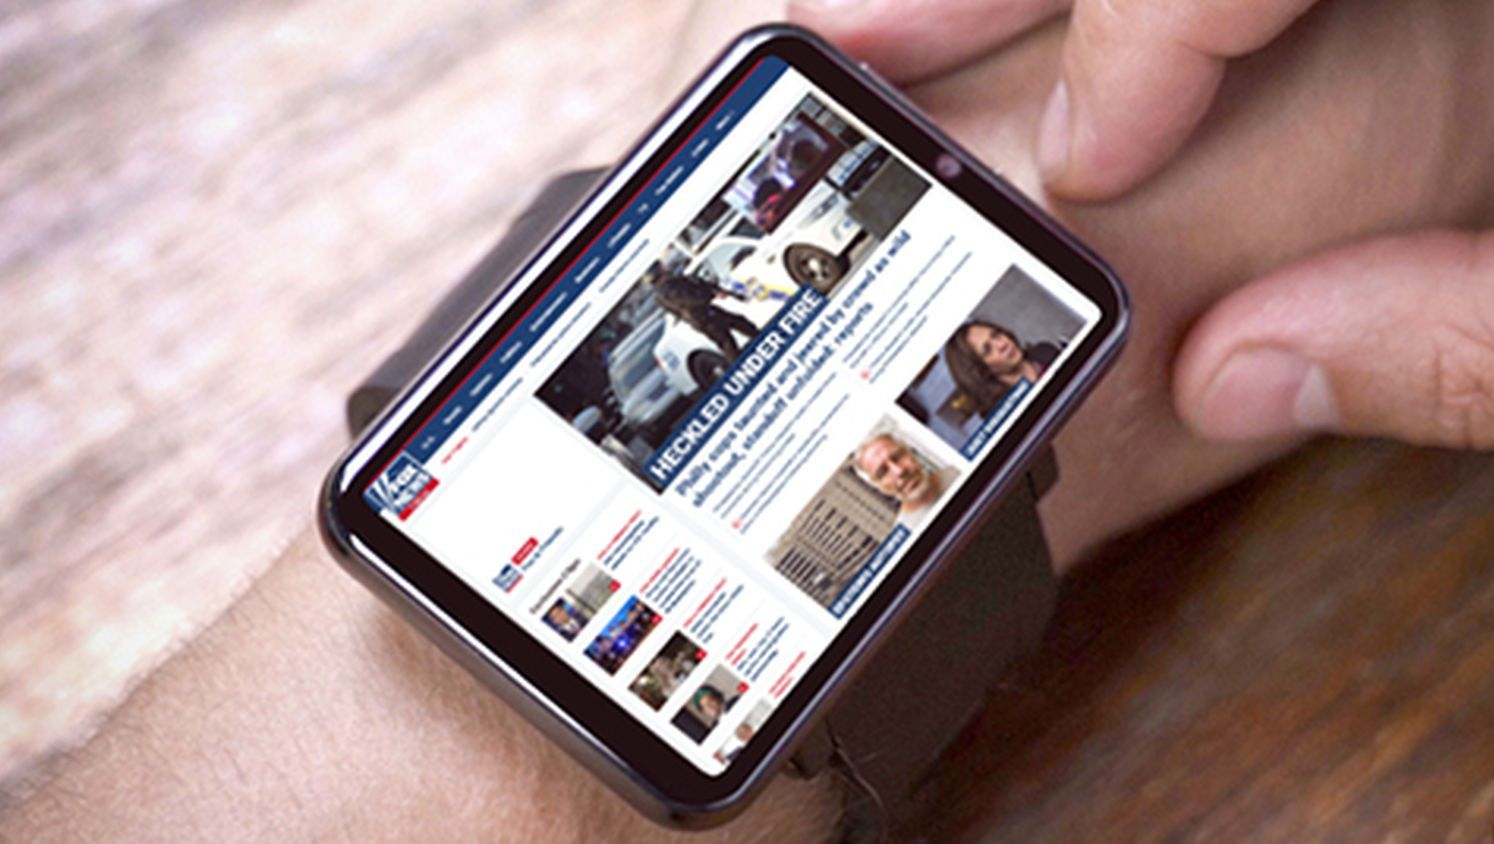 This Android wrist computer could be more powerful than an